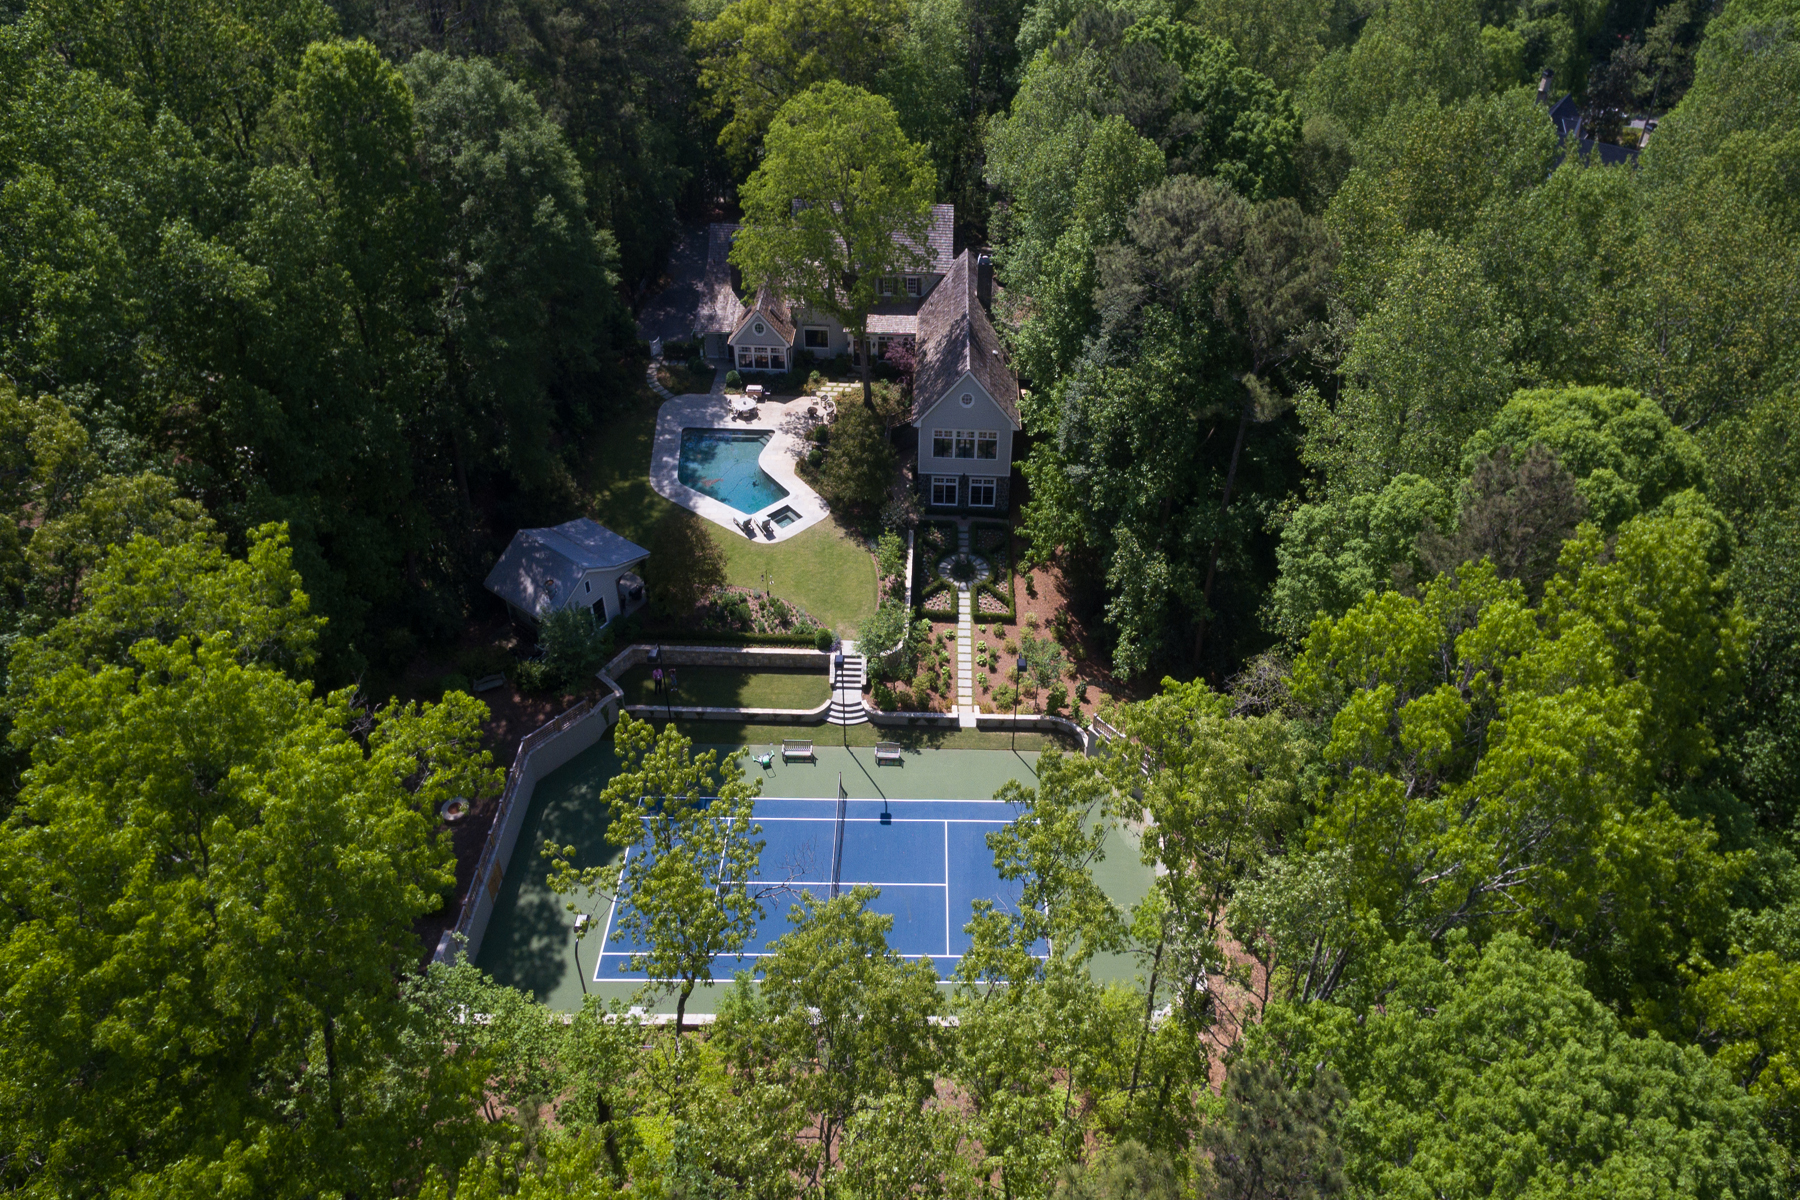 Single Family Home for Sale at Amazing 4.86 Acre Estate Property With Lighted Tennis Court And Pool 4000 Conway Valley Road NW Buckhead, Atlanta, Georgia, 30327 United States